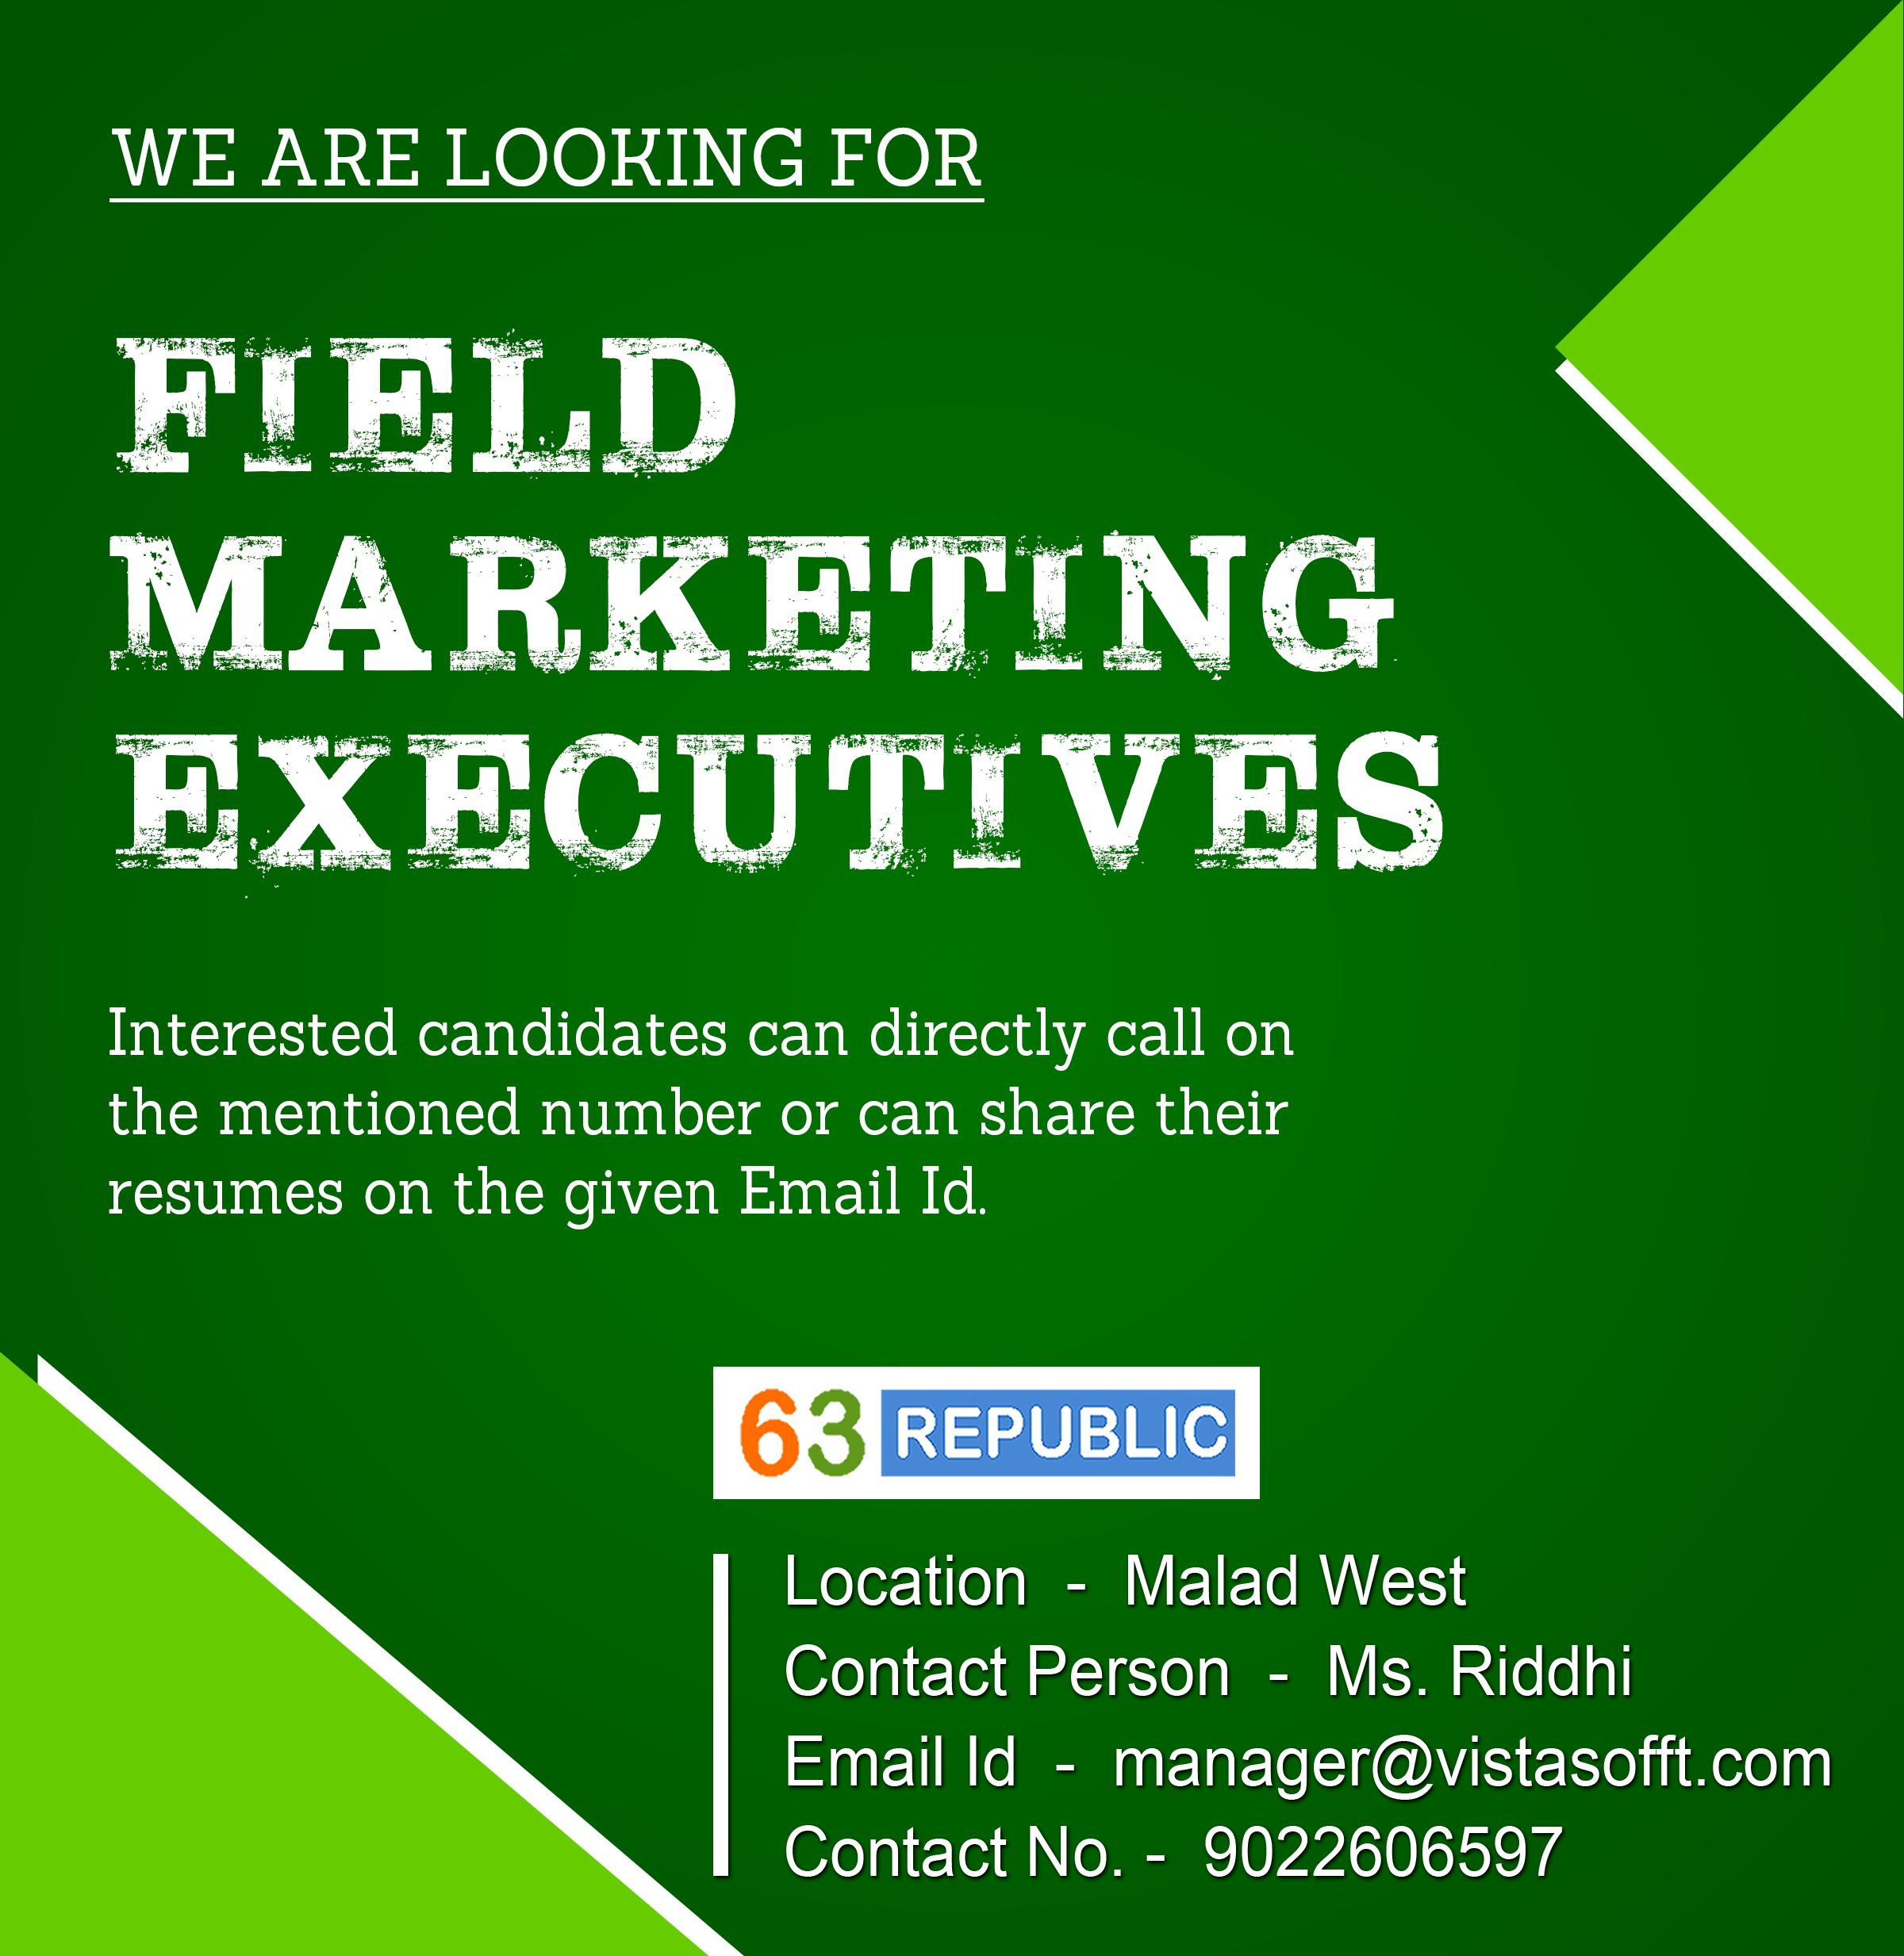 "Field Marketing Manager Sample Resume Job Openings For "" Field Marketing Executive"" Interested Applicants ."